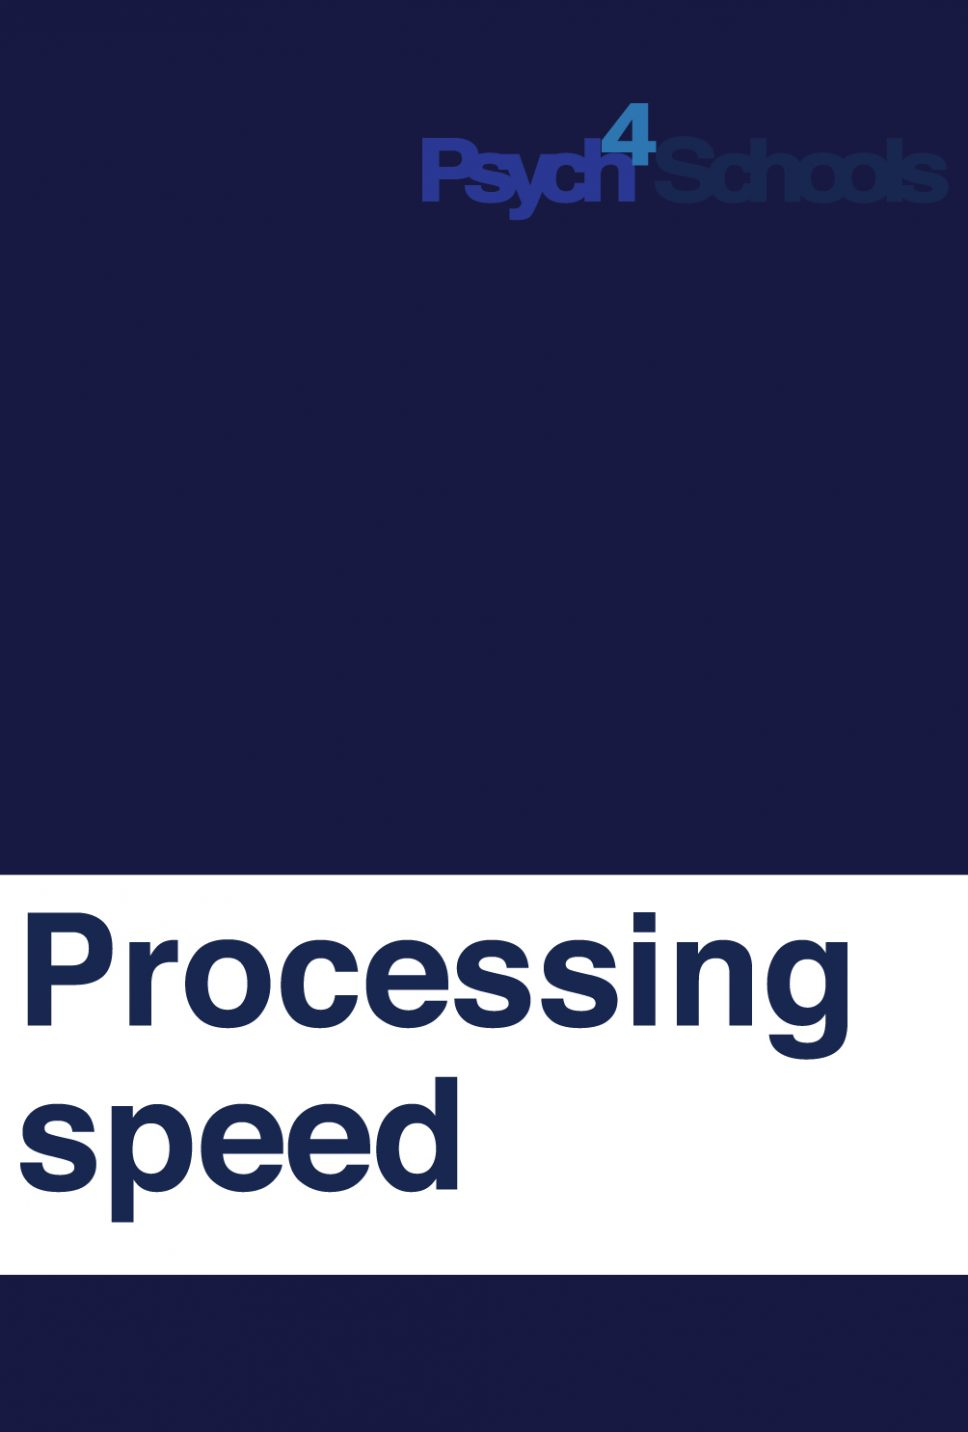 PROCESSING-SPEED